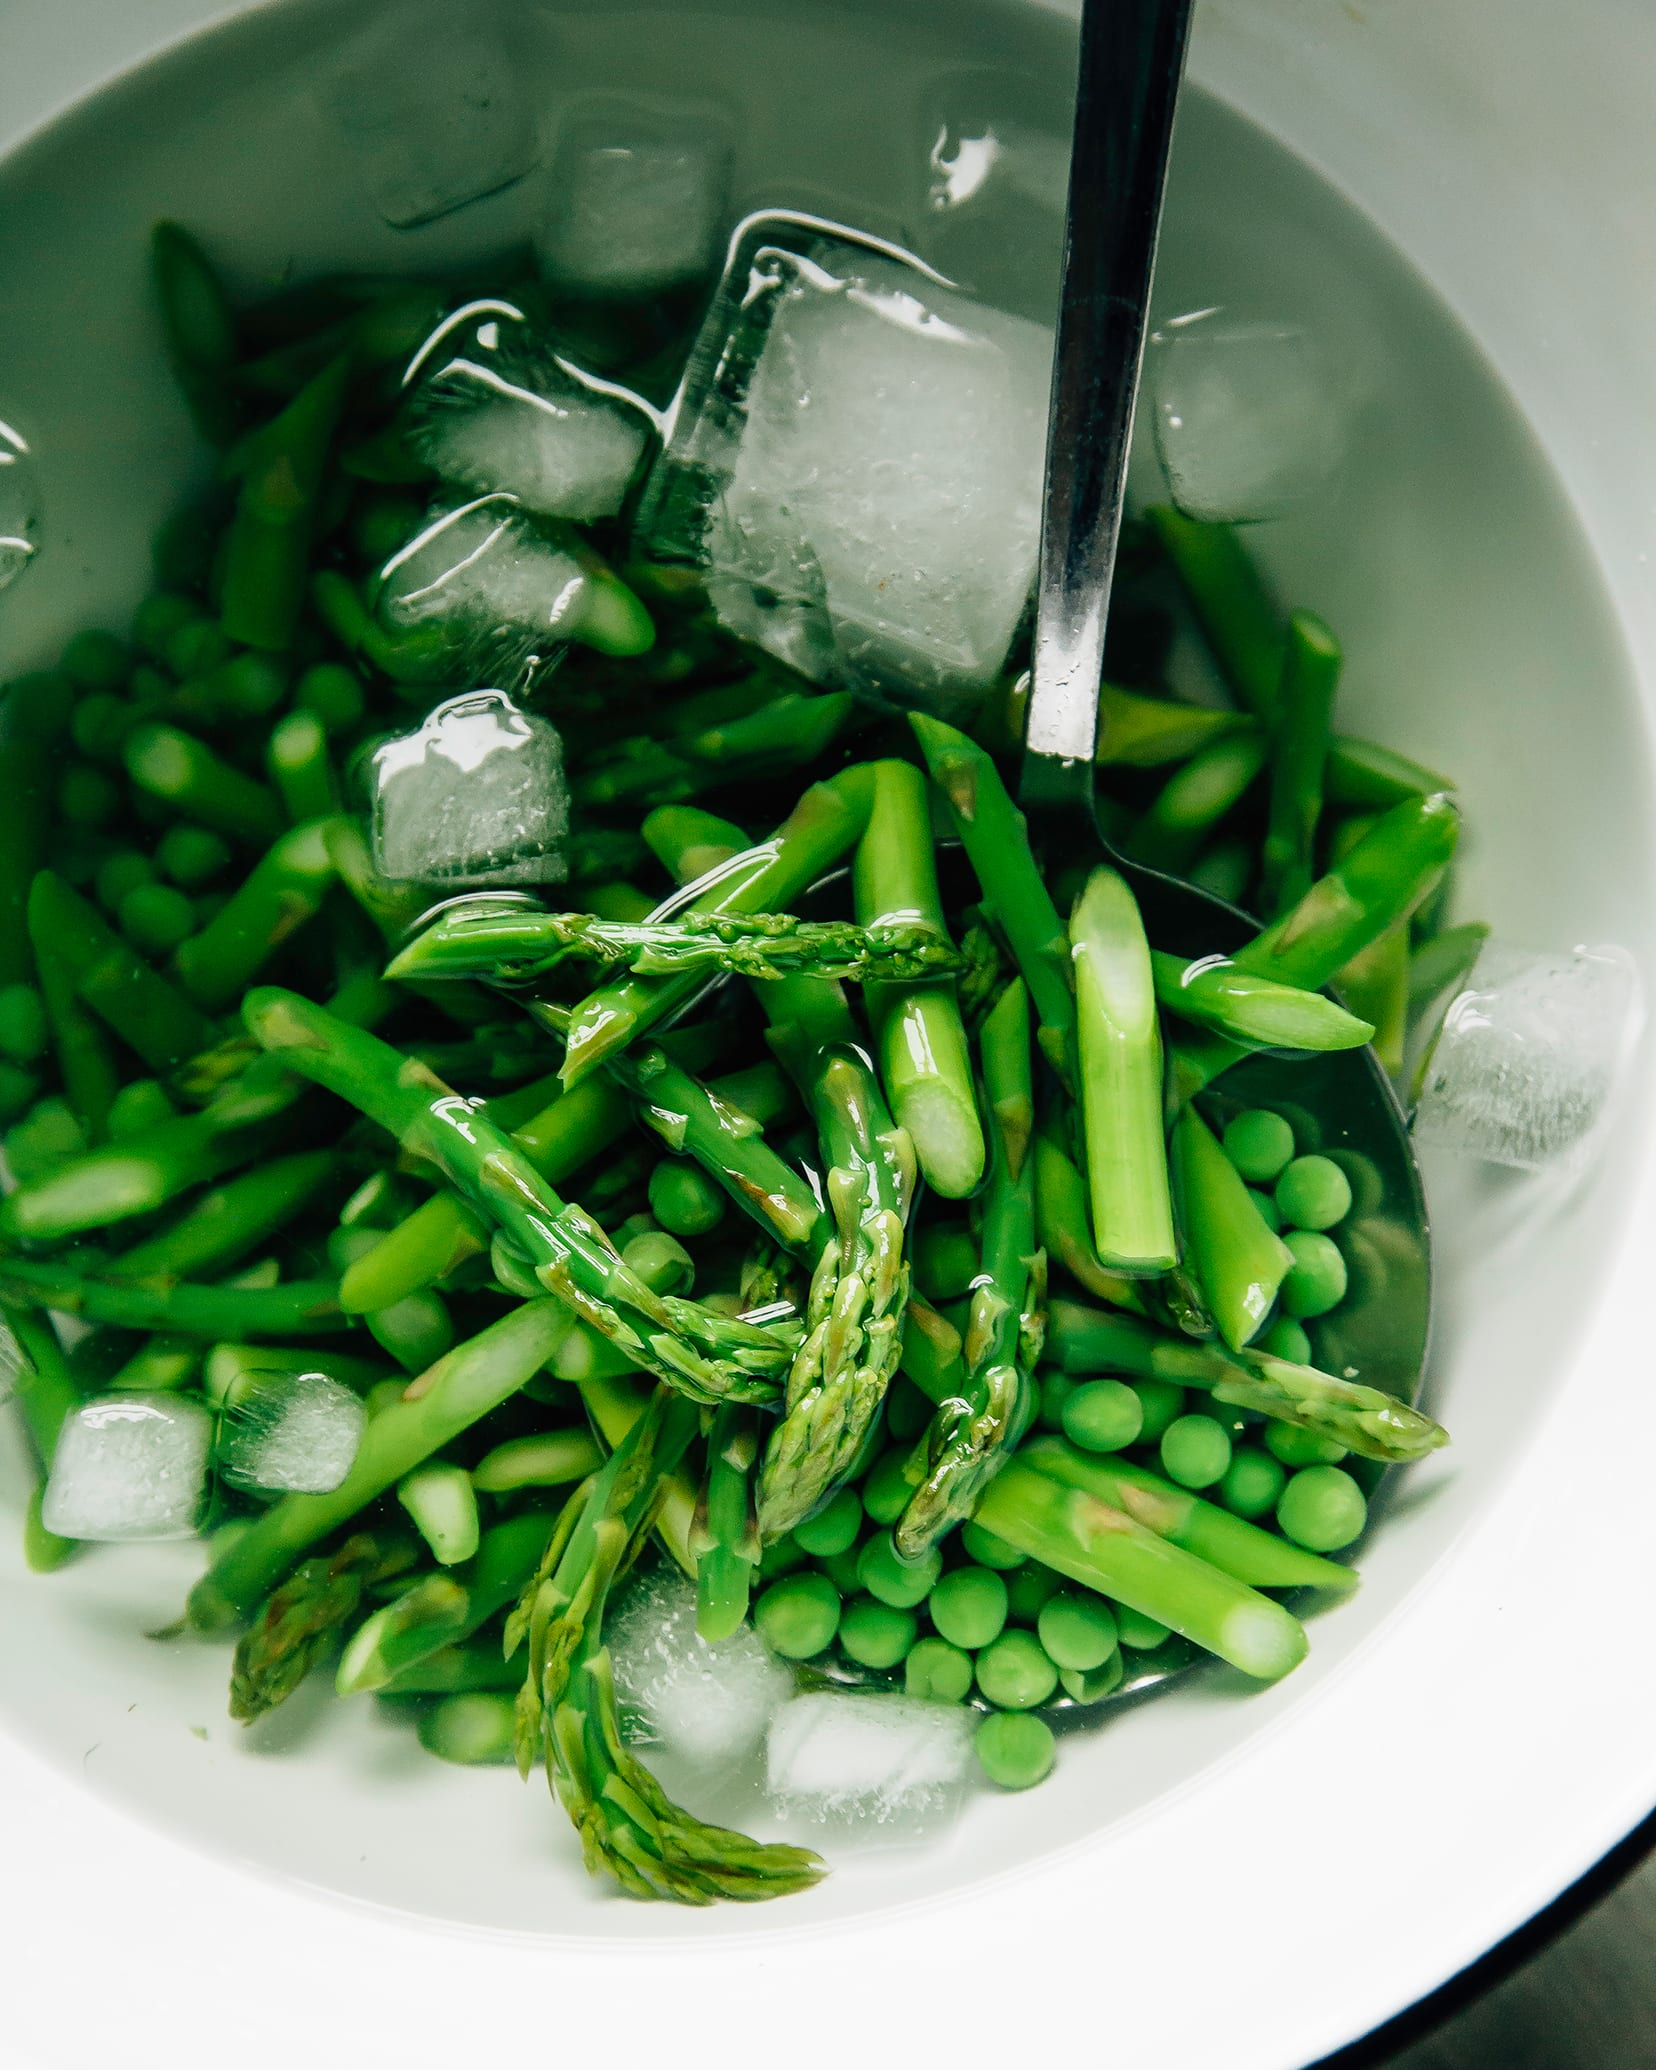 An overhead shot of green vegetables in an ice water bath in a white bowl.